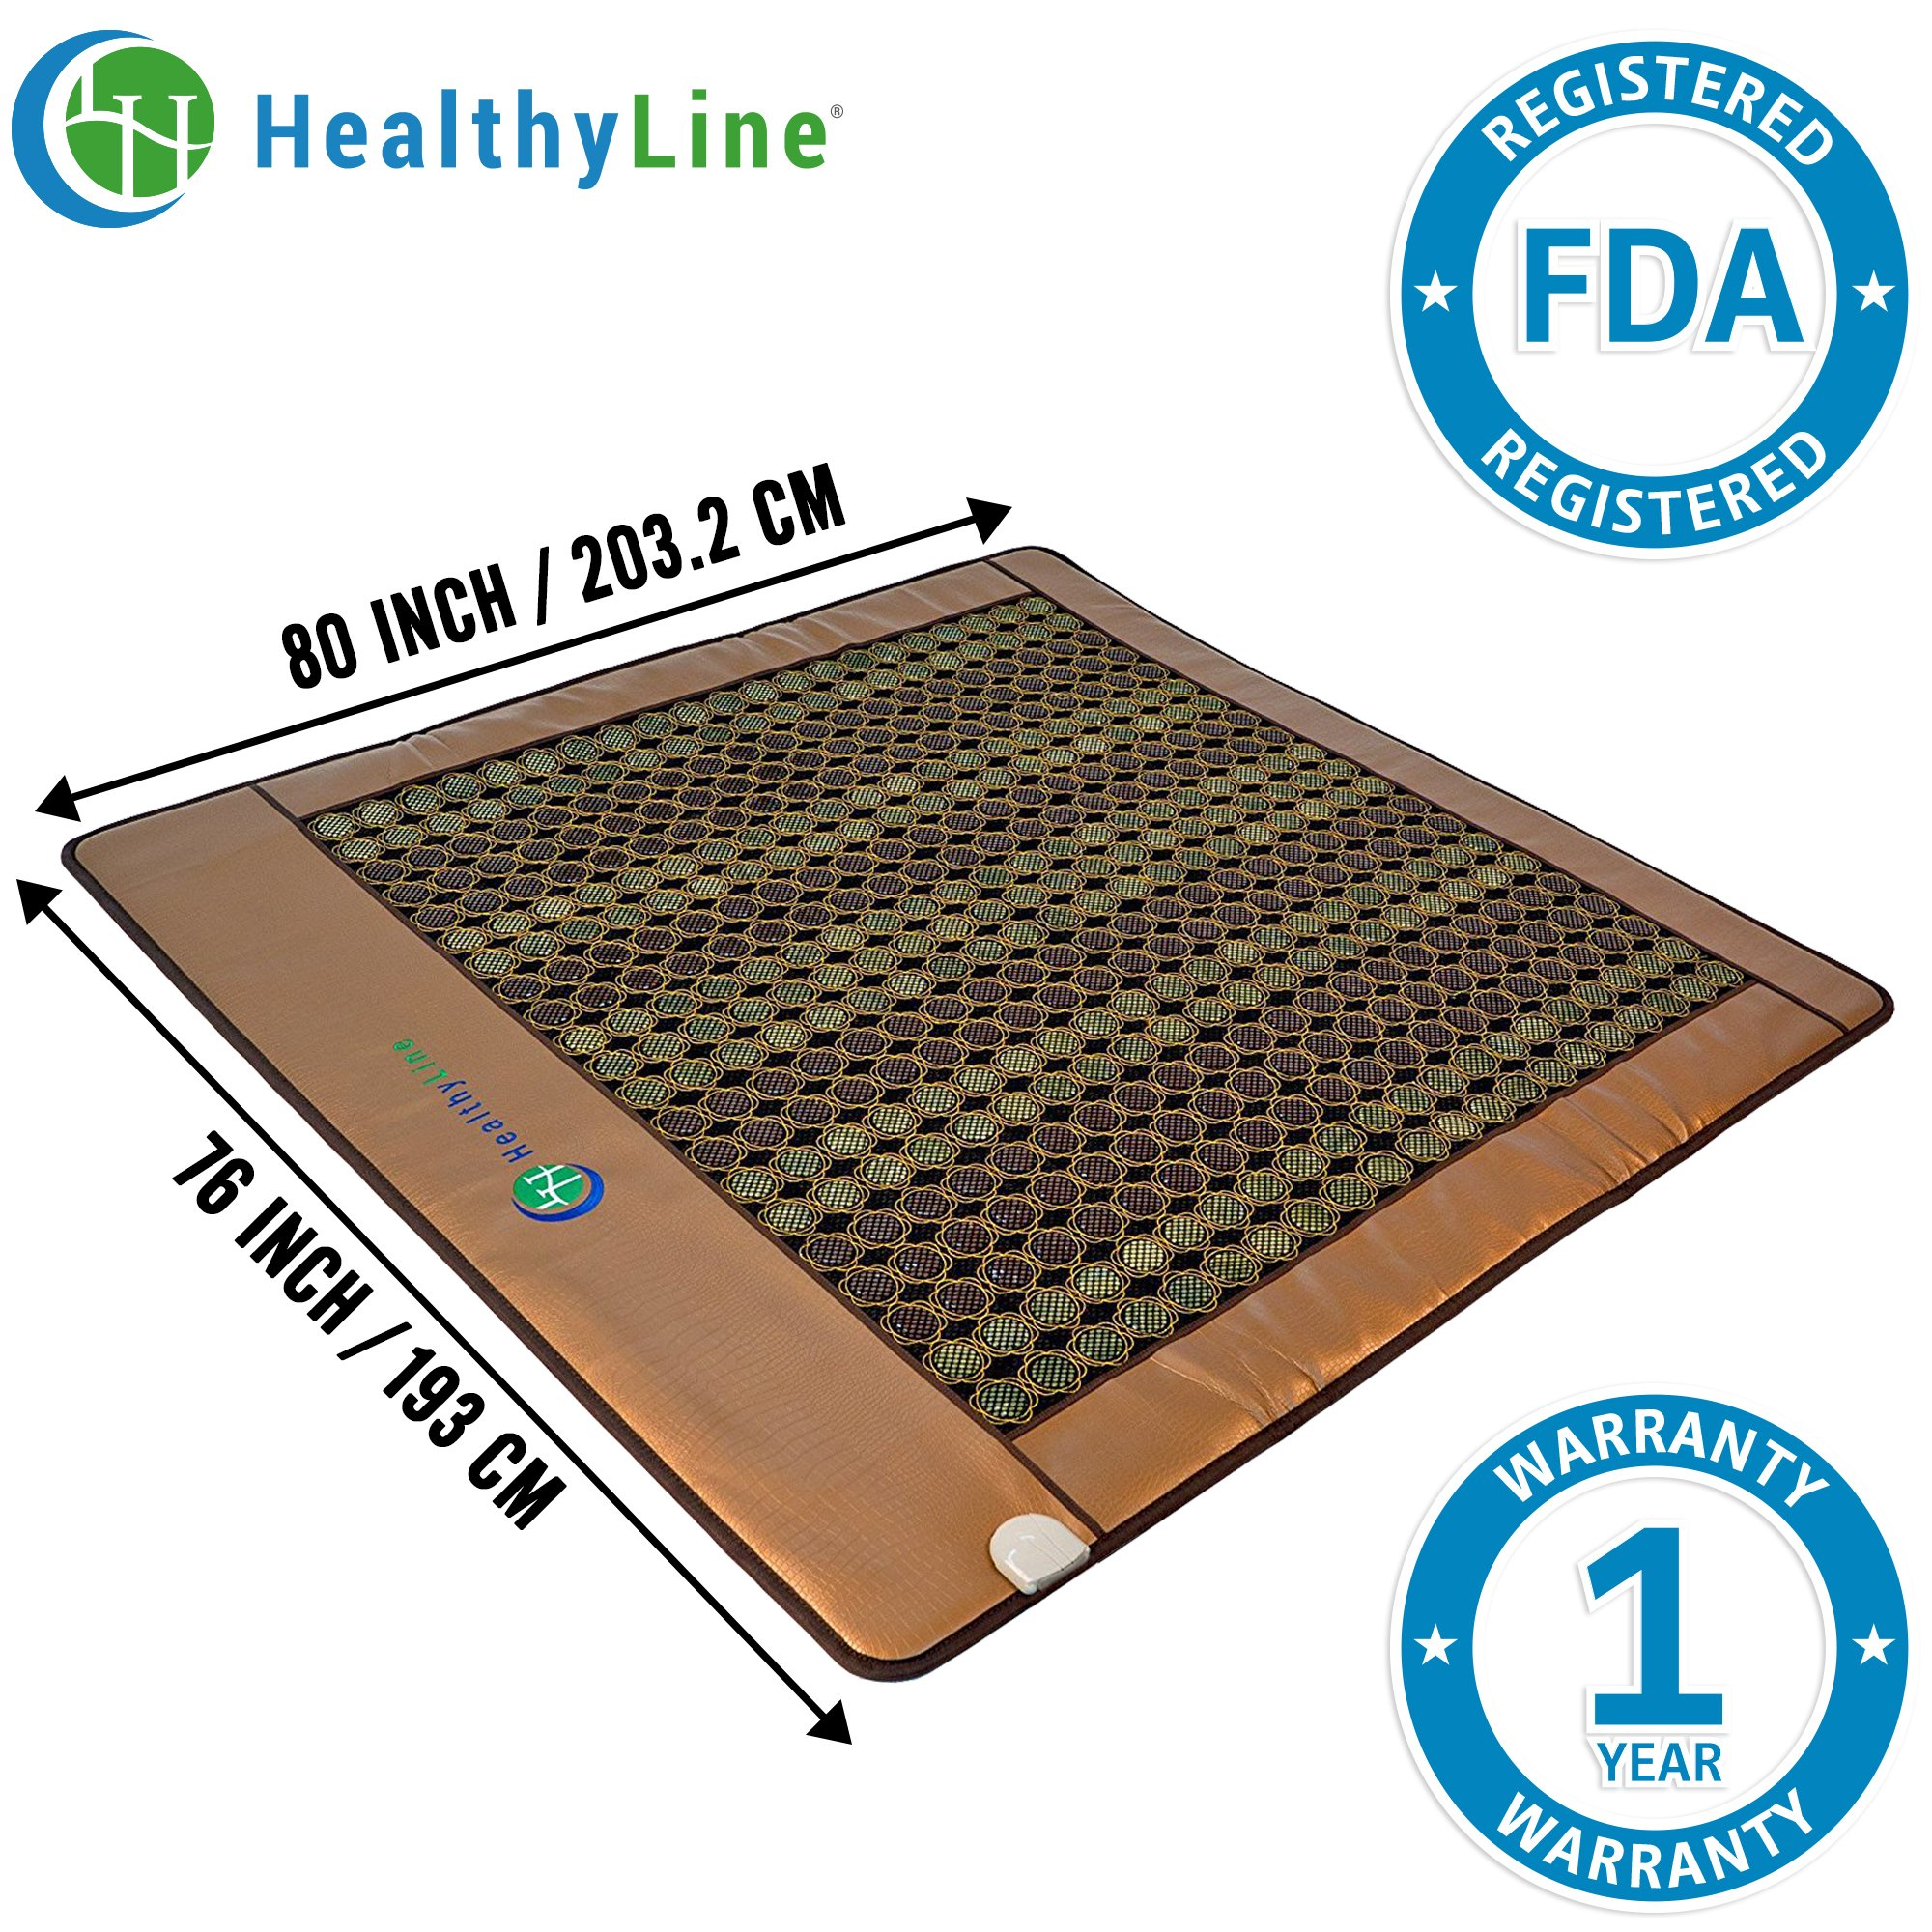 HealthyLine Infrared Heating Mat|Natural Jade & Tourmaline Stone 80'' x 76'' | Negative Ions (King) | Relieve Pain, Stress & Insomnia | FDA by HealthyLine (Image #1)